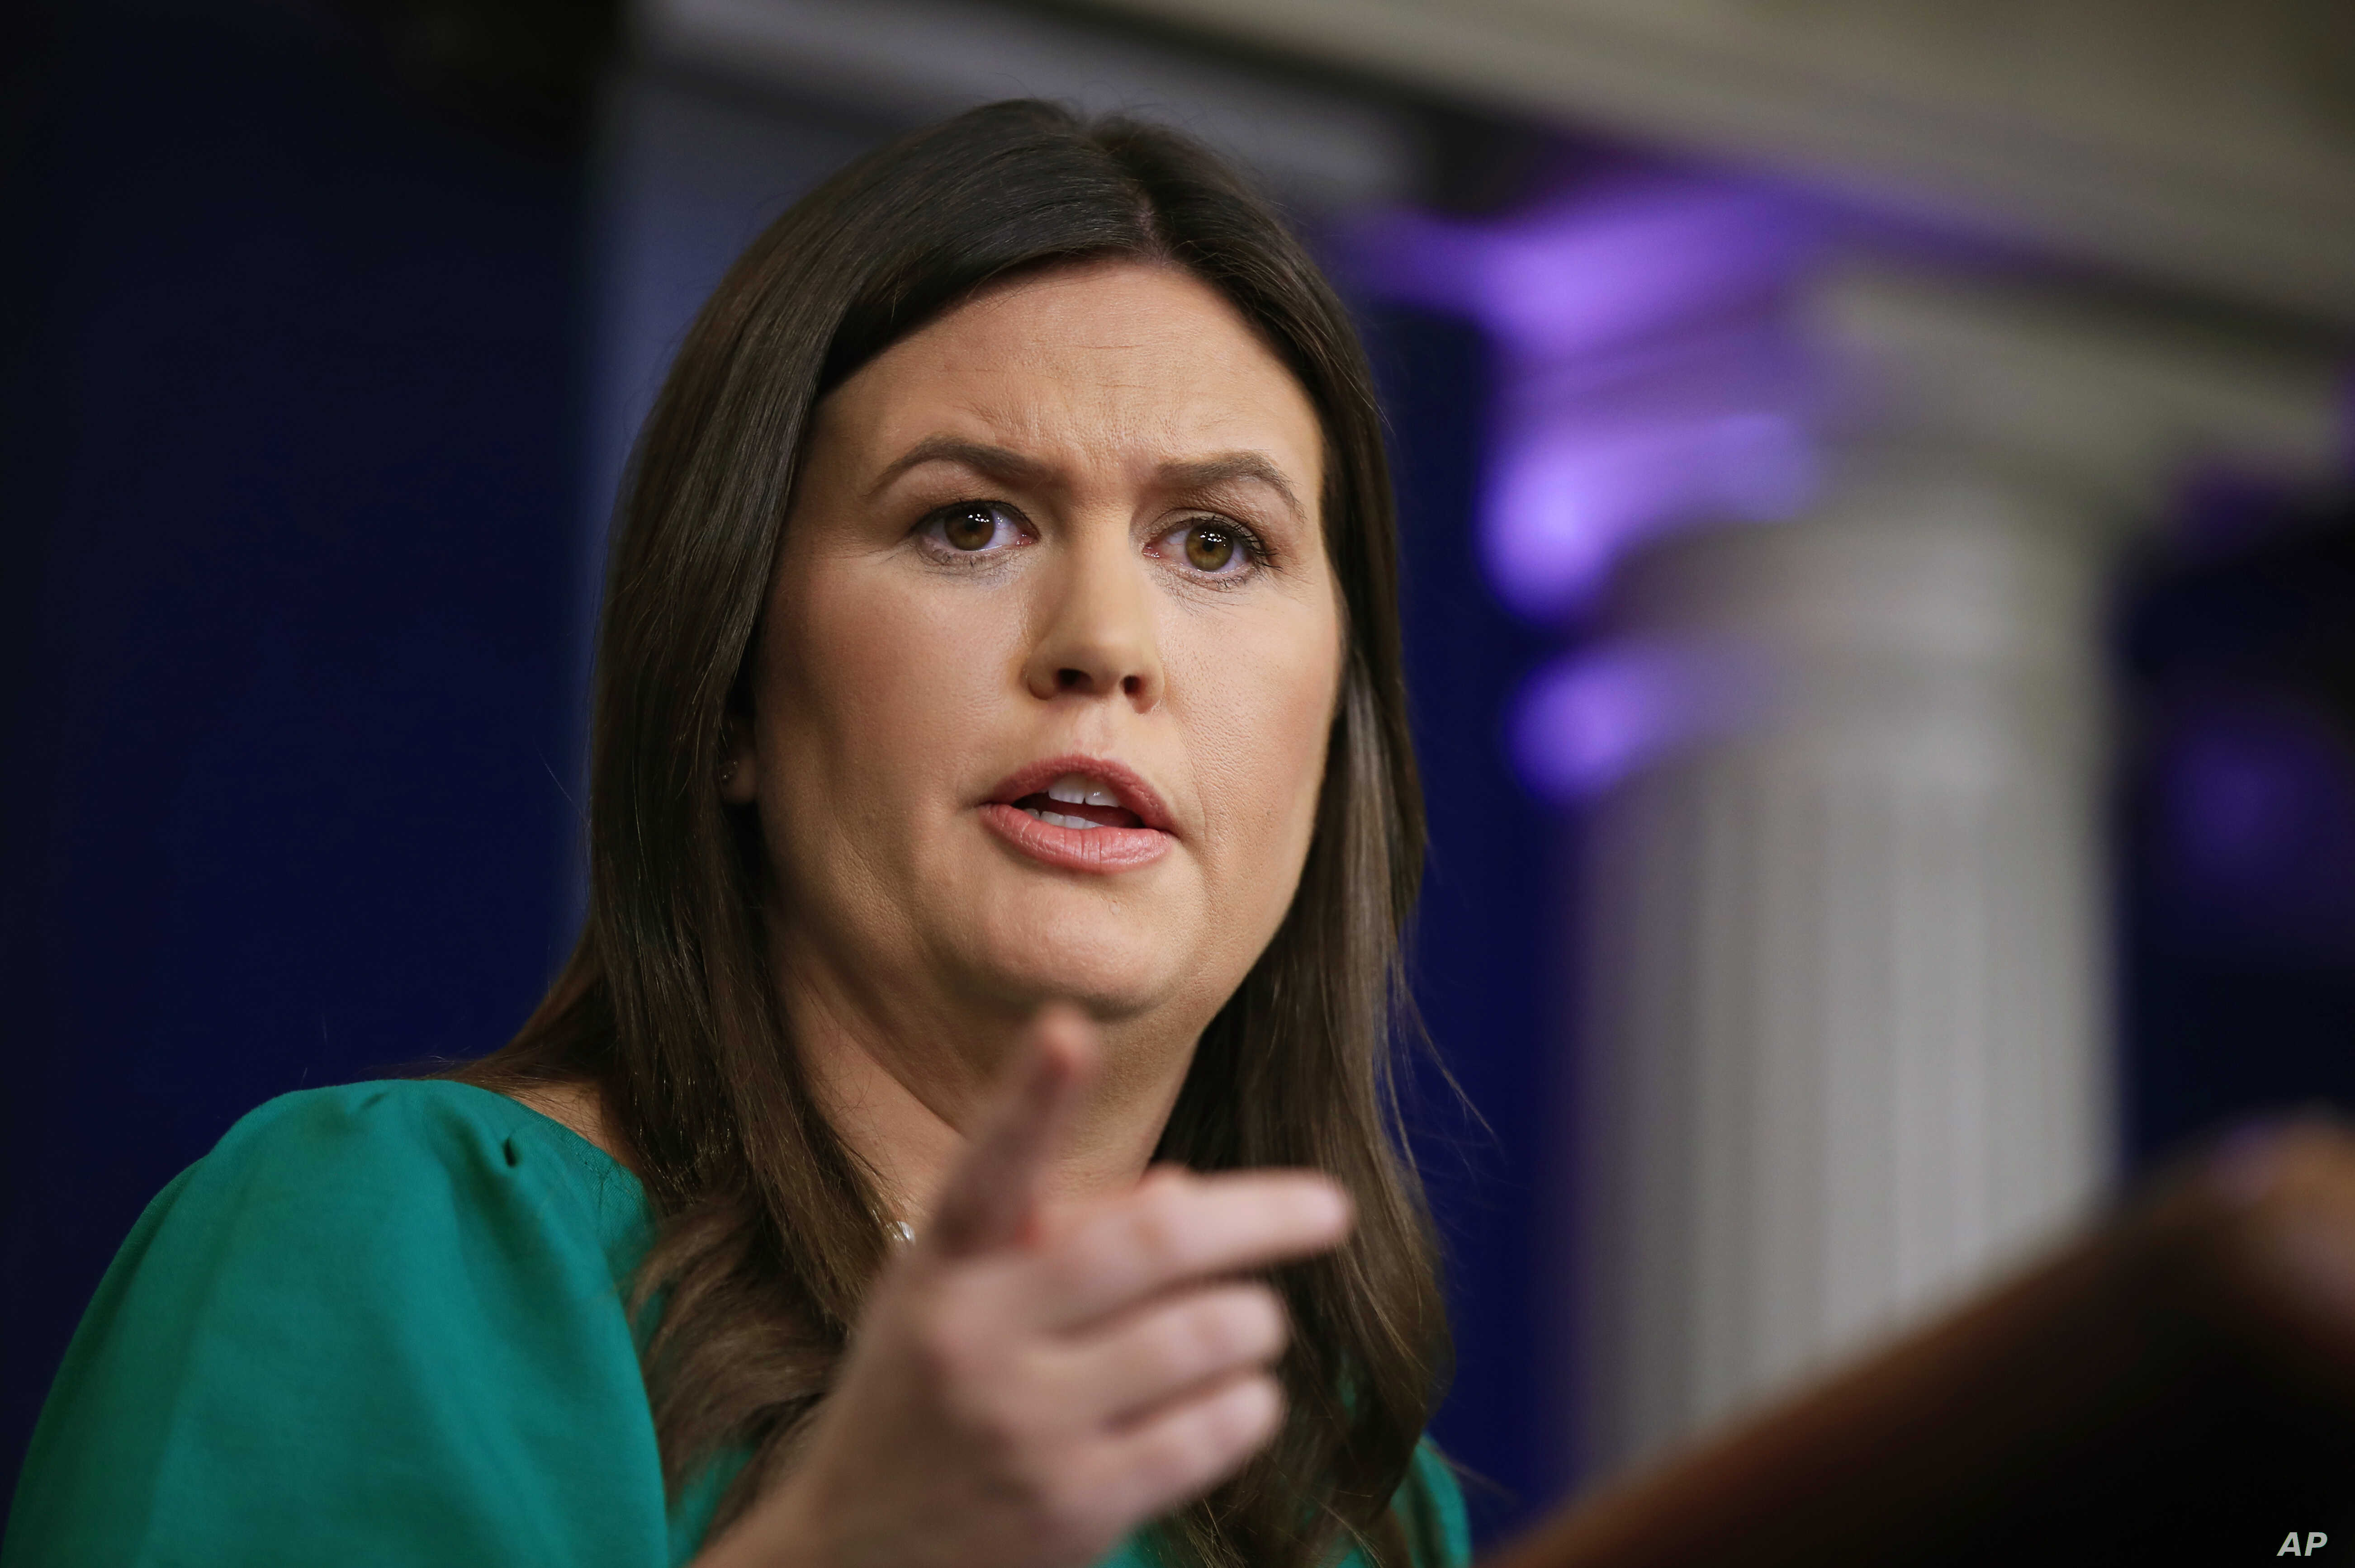 White House press secretary Sarah Huckabee Sanders talks to reporters during a press briefing at the White House in Washington, Oct. 29, 2018.